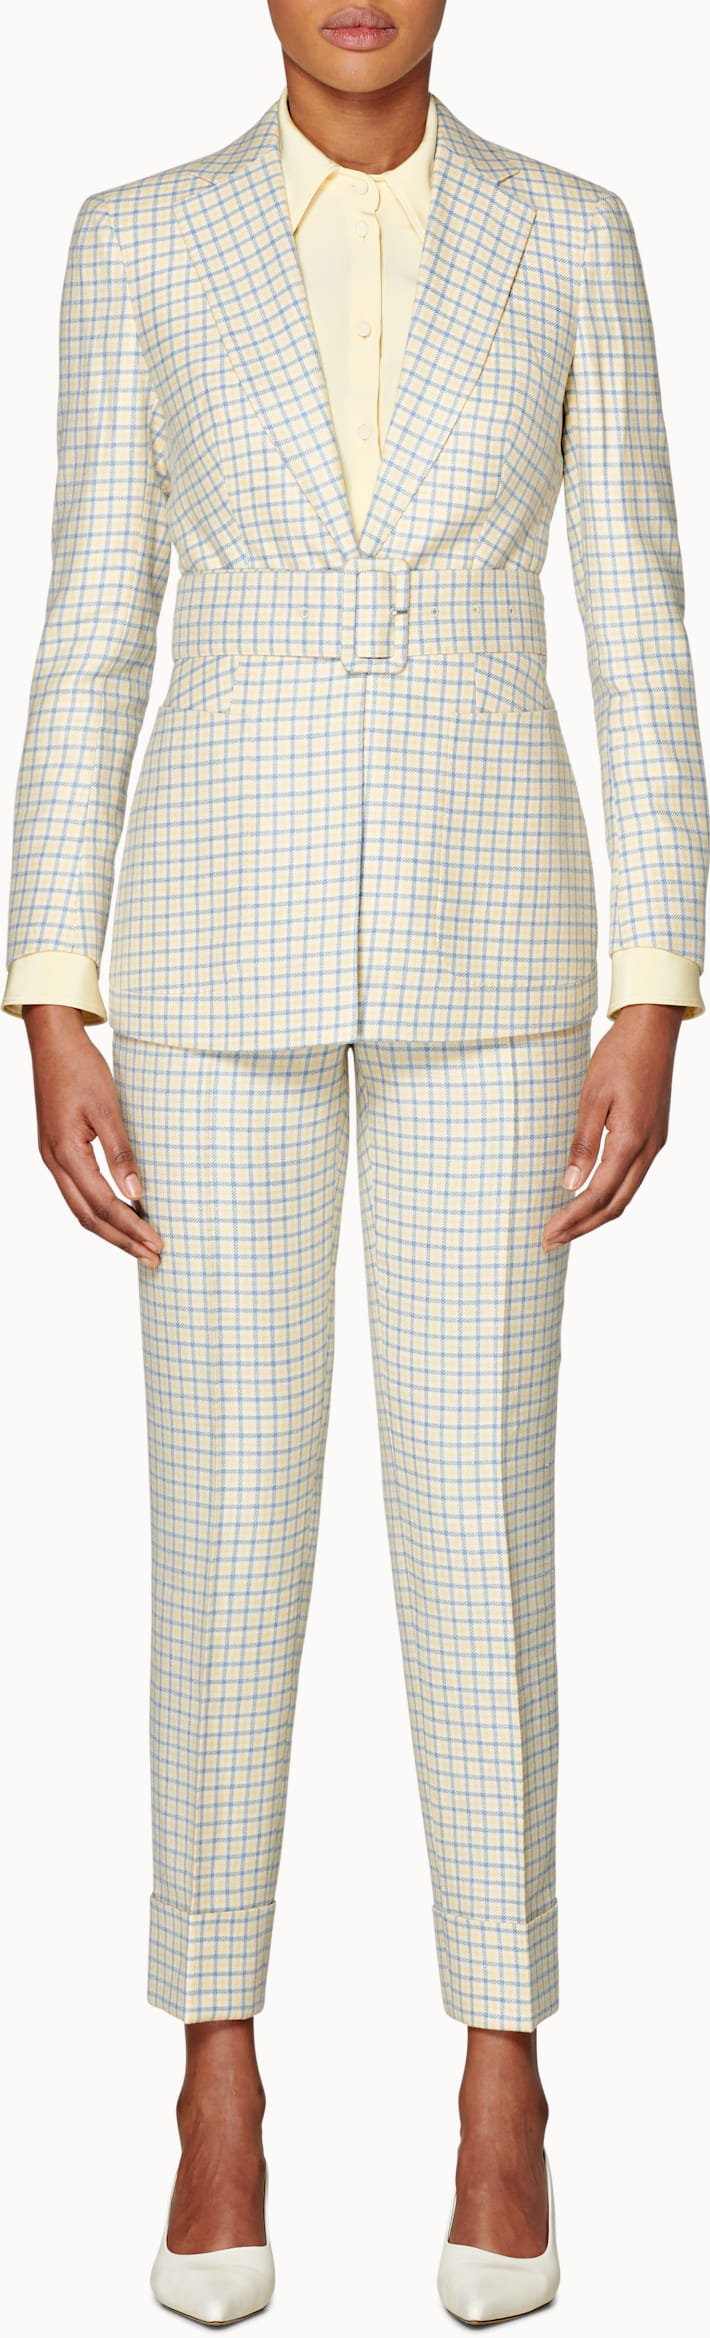 Cameron Yellow & Light Blue Checked Suit